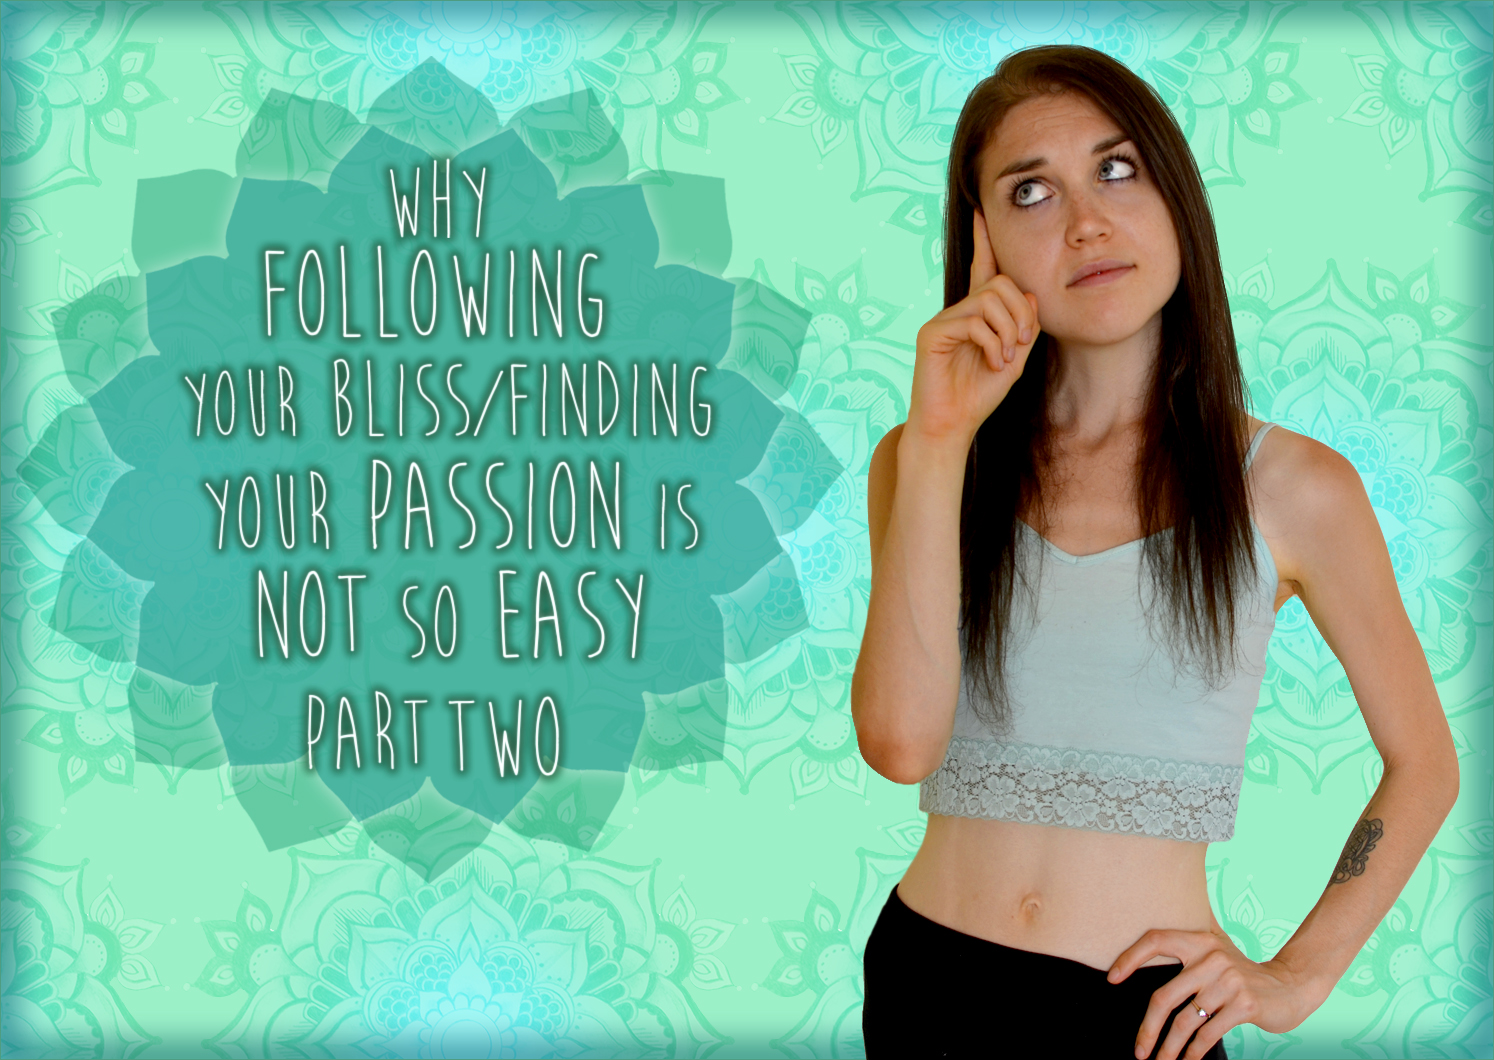 Why Following Your Bliss Is Not So Easy, Part Two